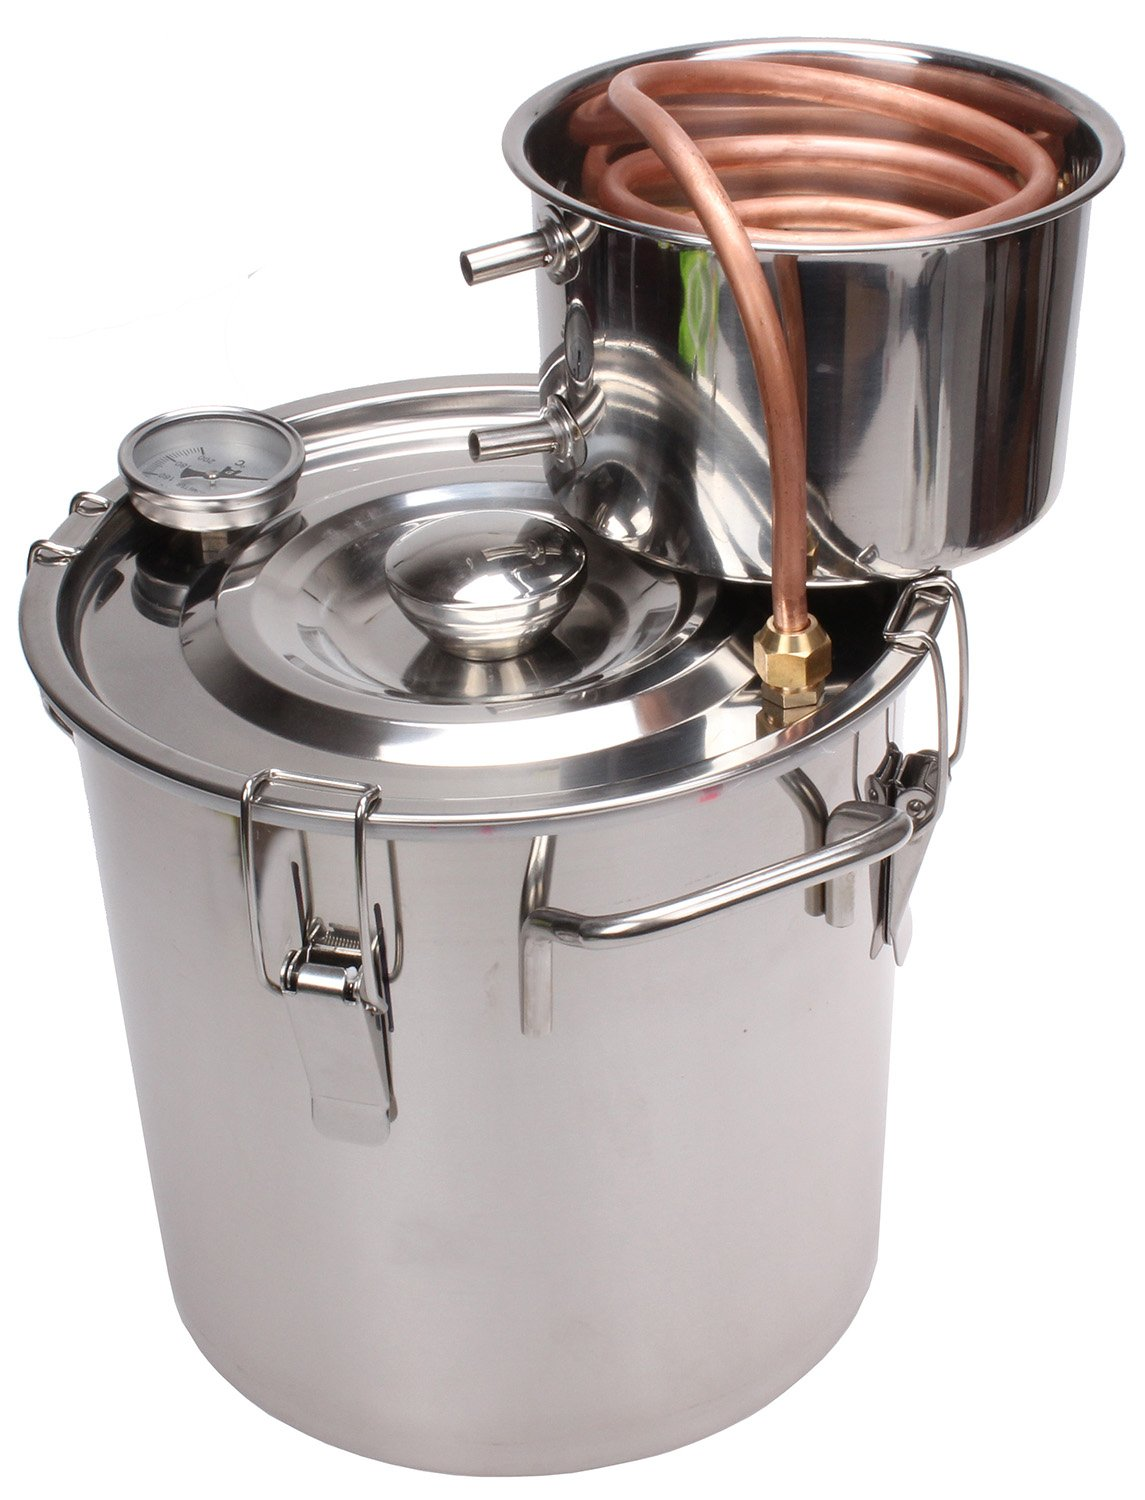 KMM 3 Gal Home Stainless Steel Alcohol Whiskey Essential Oil Water Distiller Moonshine Still Kit S0010